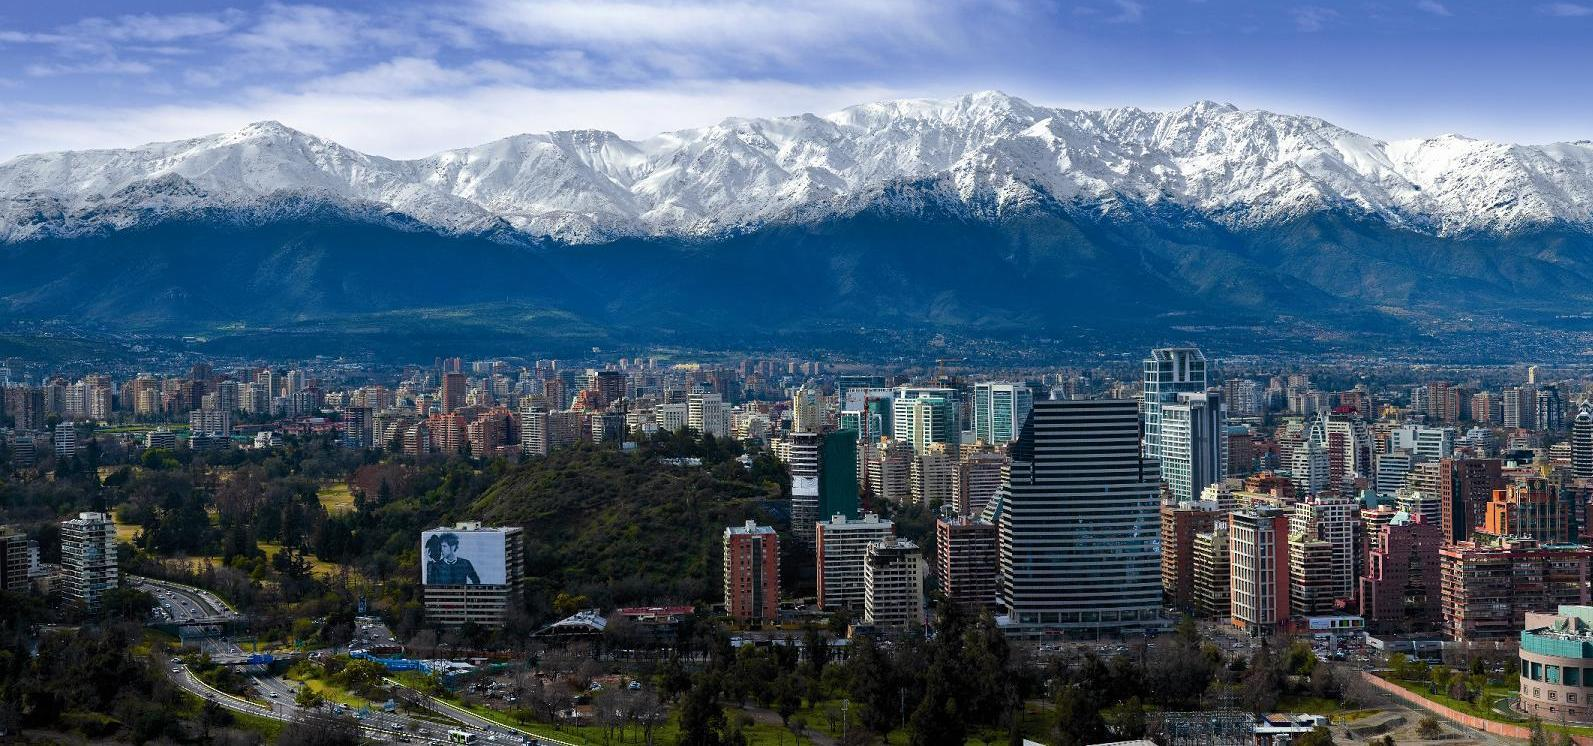 Santiago Wallpapers, 34 Santiago Images for Free (2MTX Santiago ...